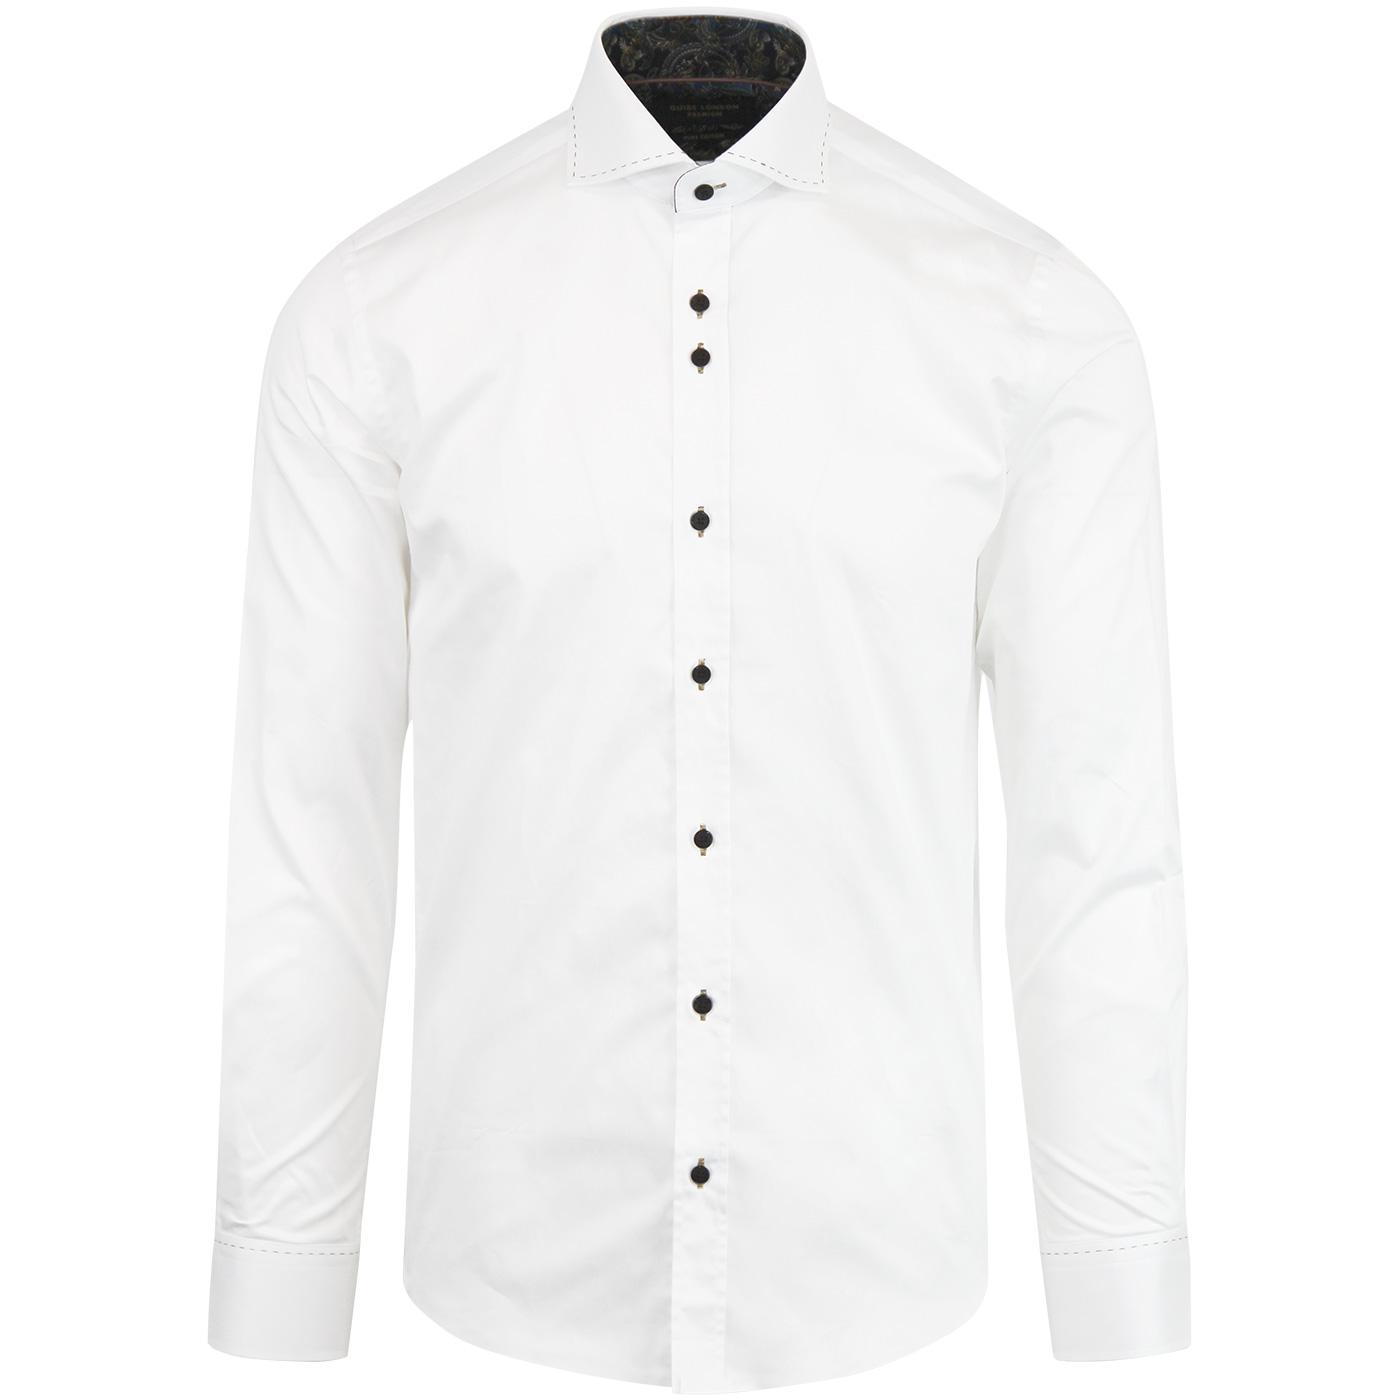 GUIDE LONDON 60s Mod Stitch Collar Smart Shirt (W)